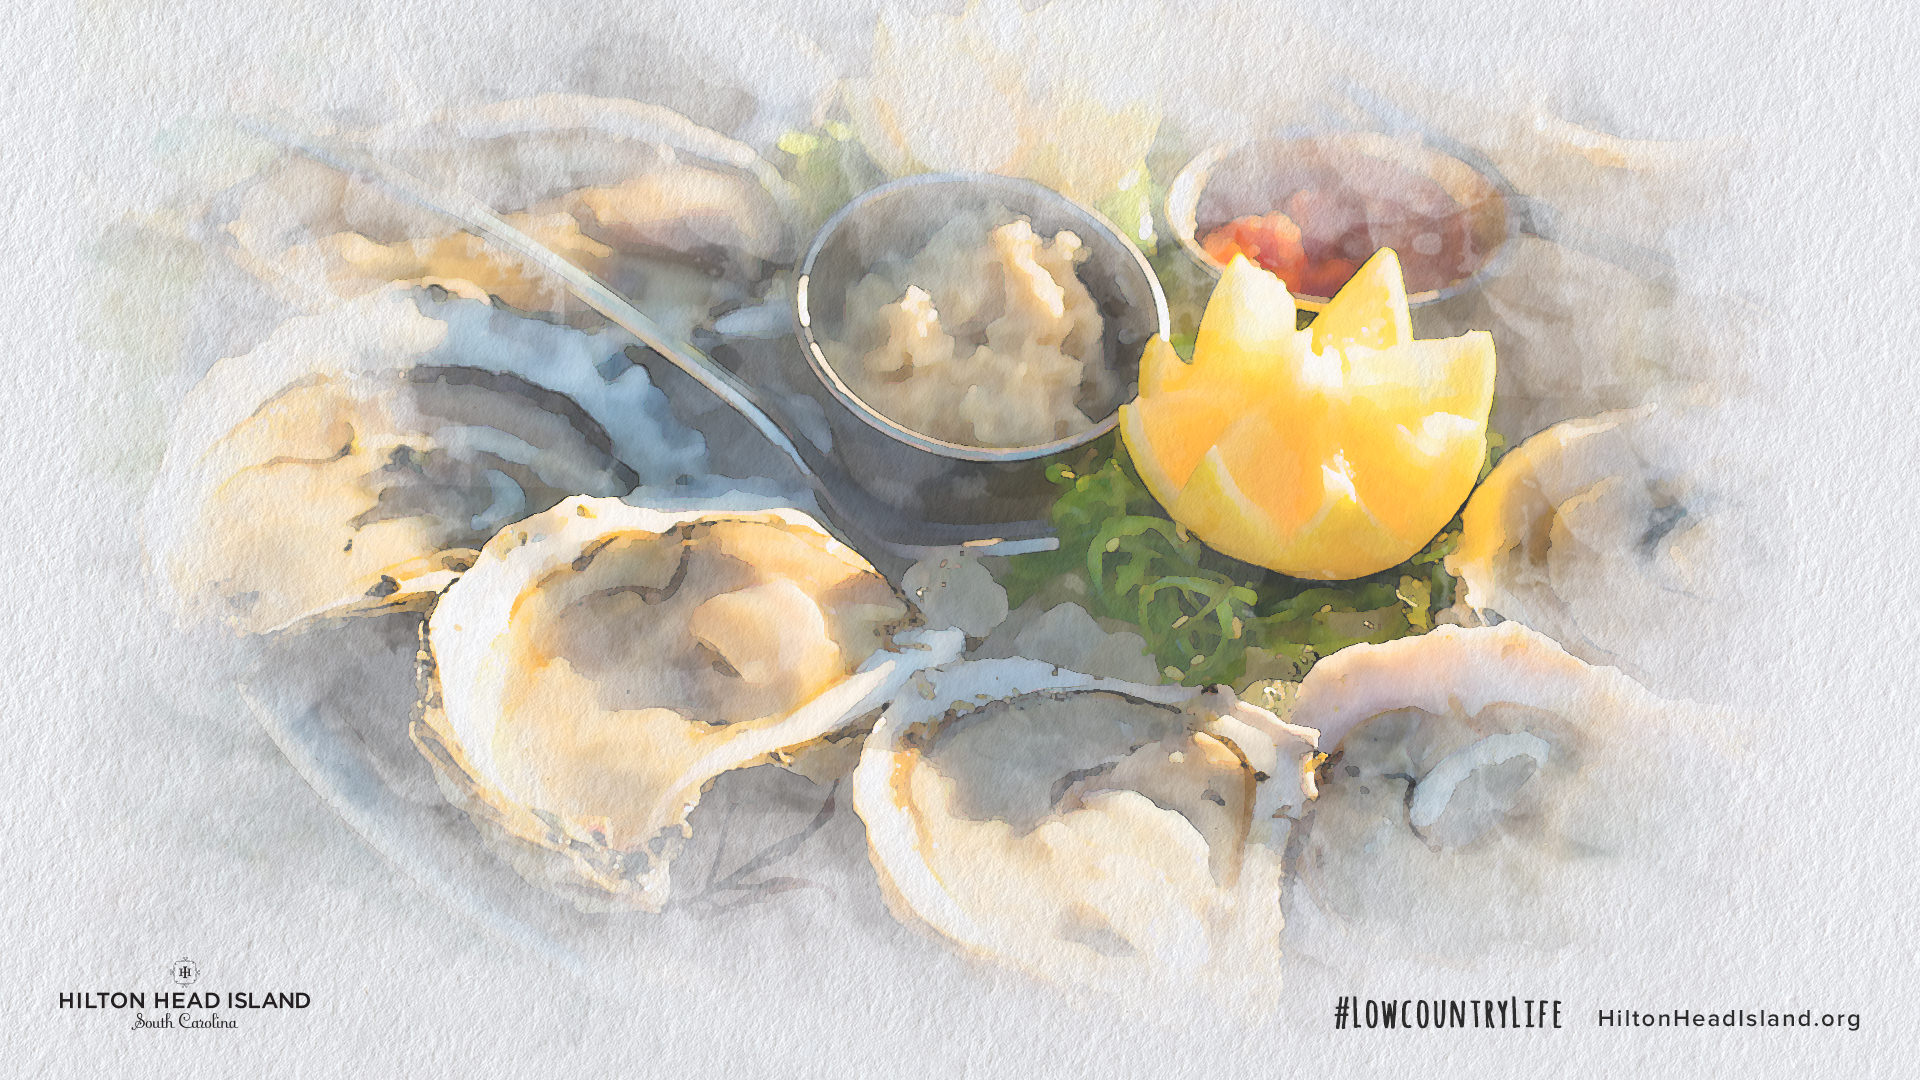 Watercolor image of oysters on Hilton Head Island